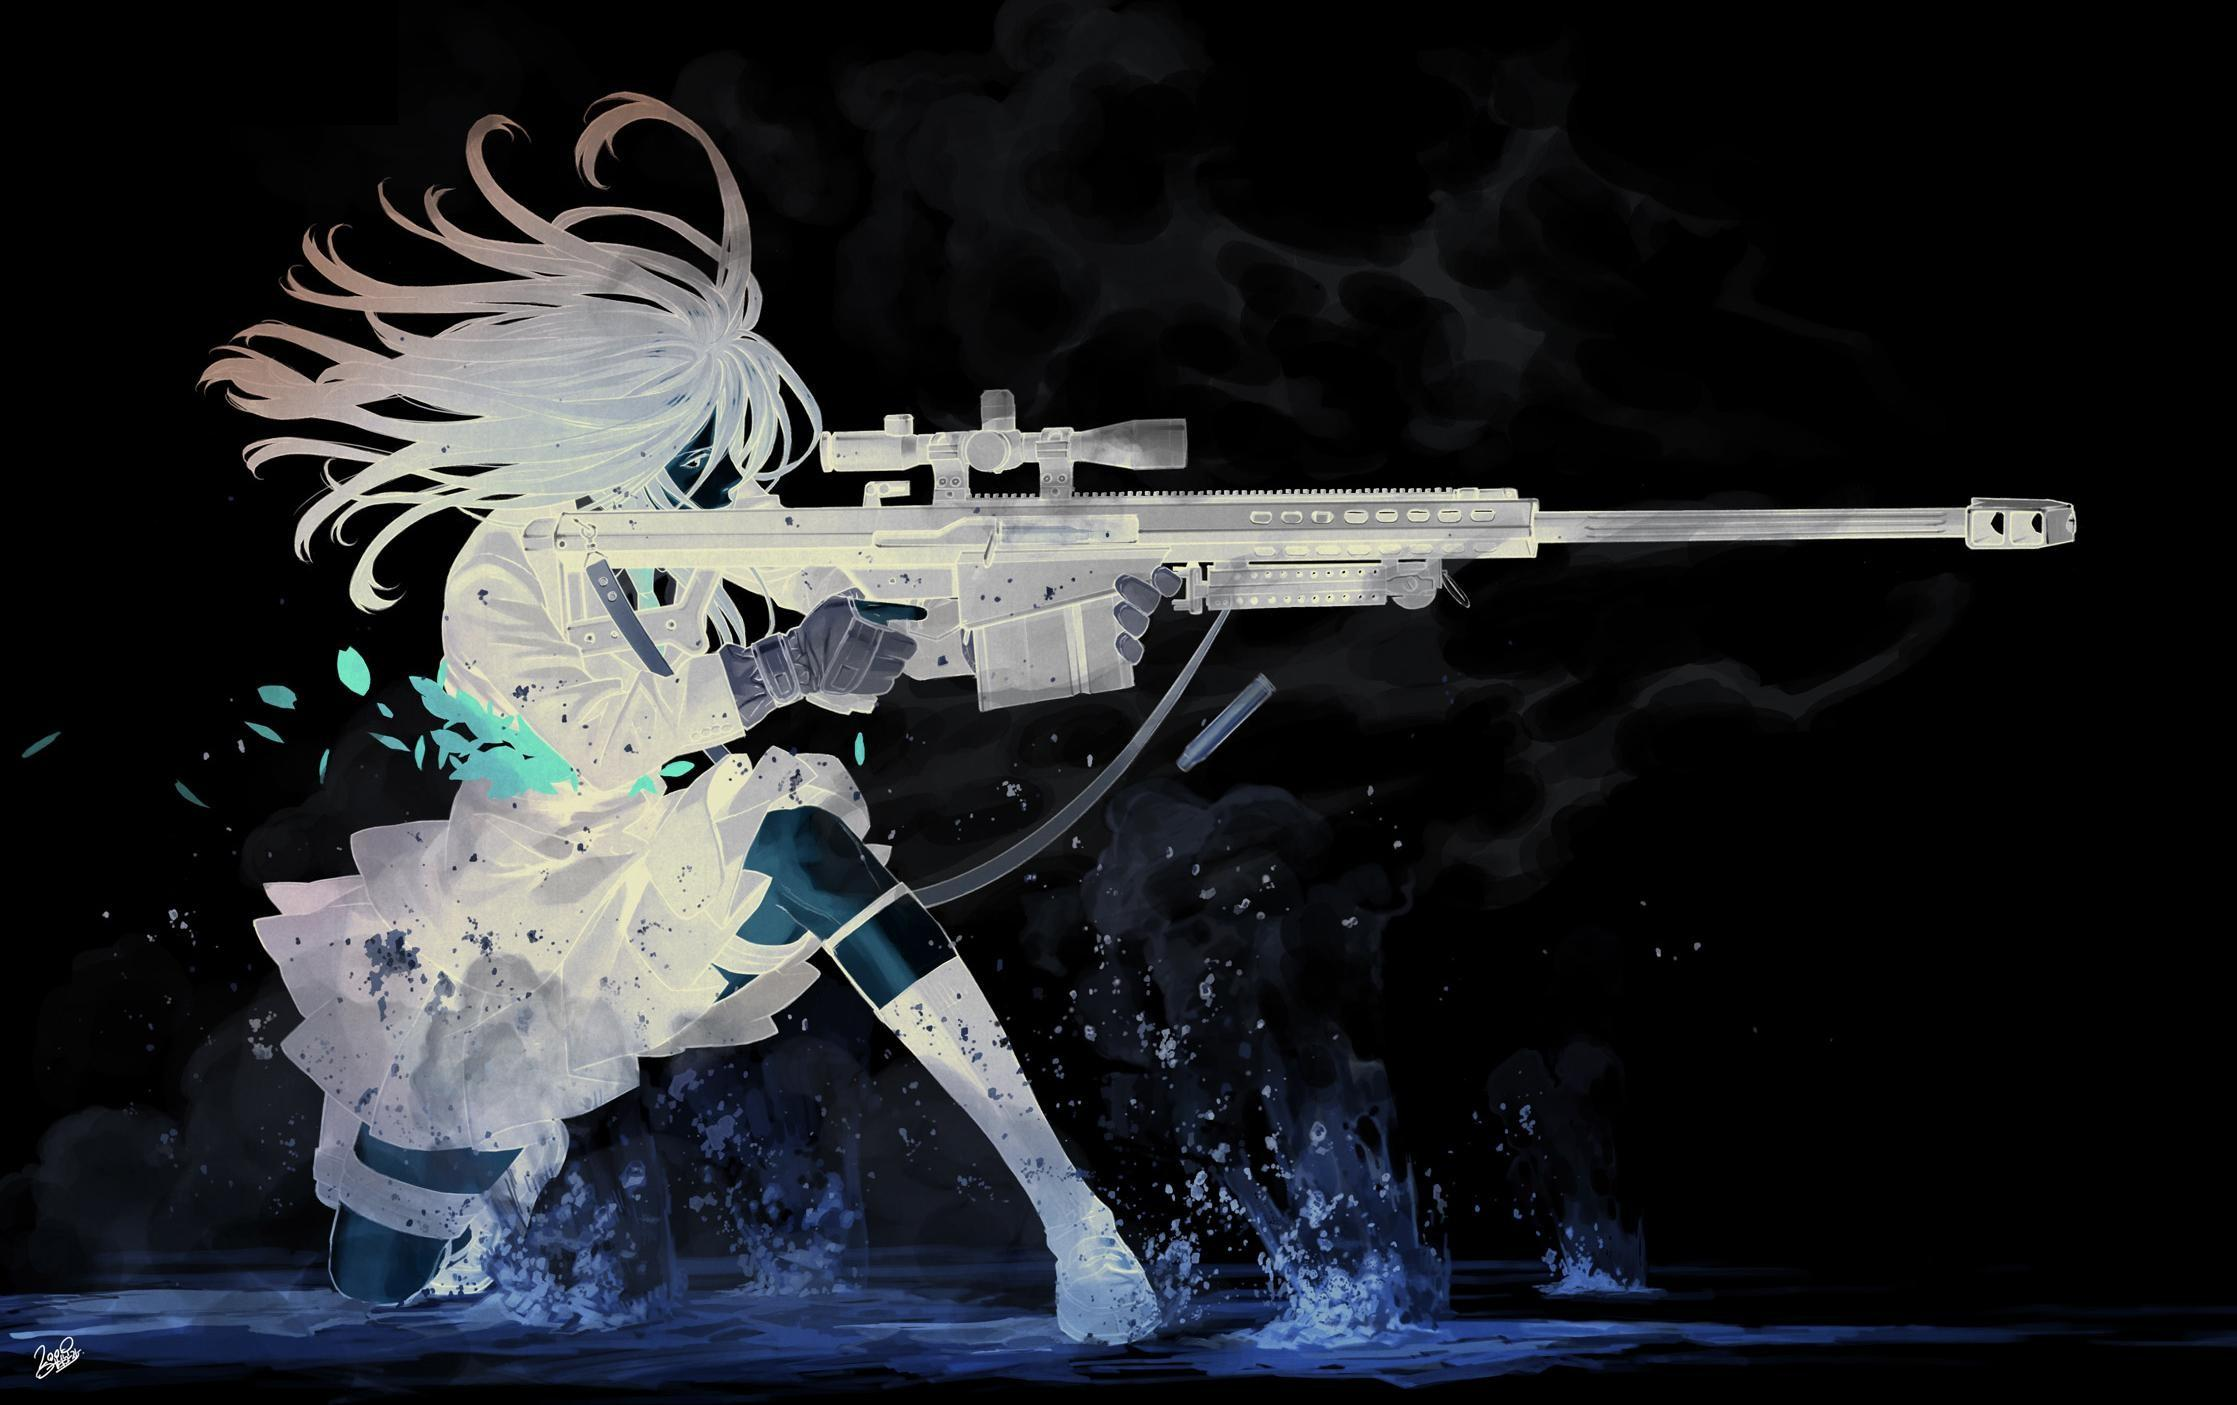 Sniper Anime Wallpapers - Wallpaper Cave